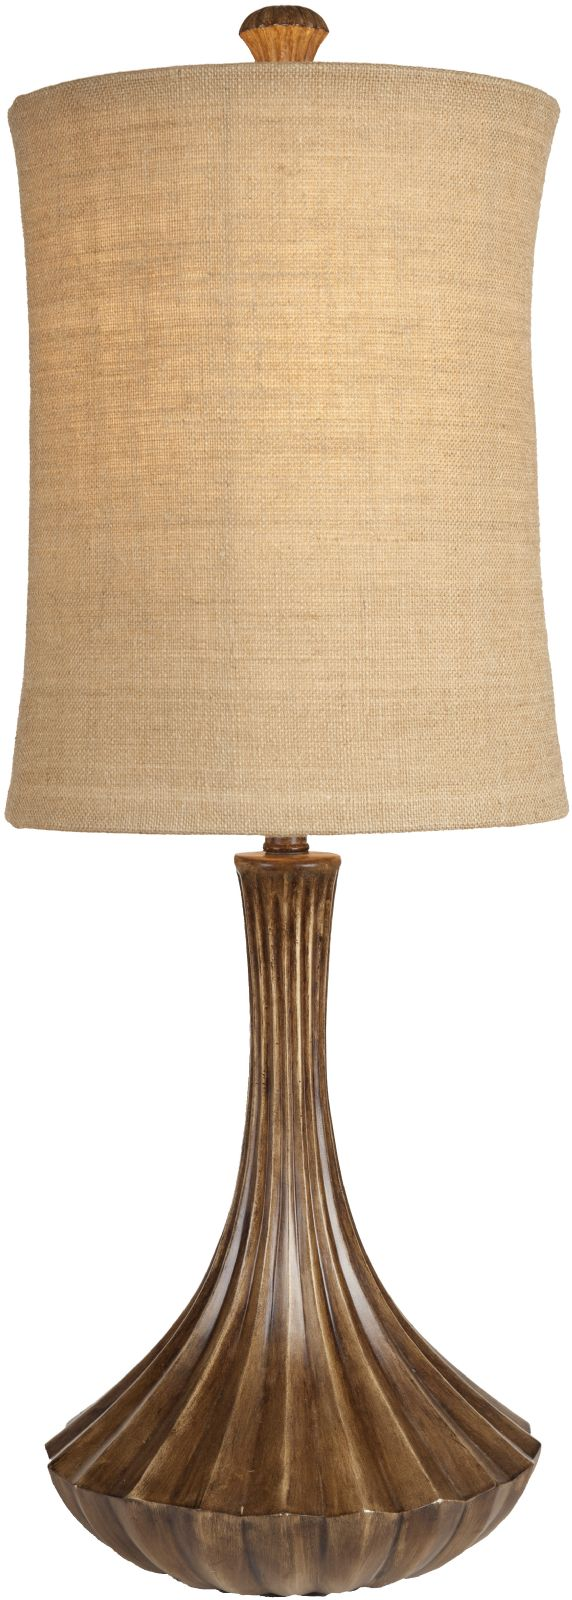 surya lamp contemporary table lamp